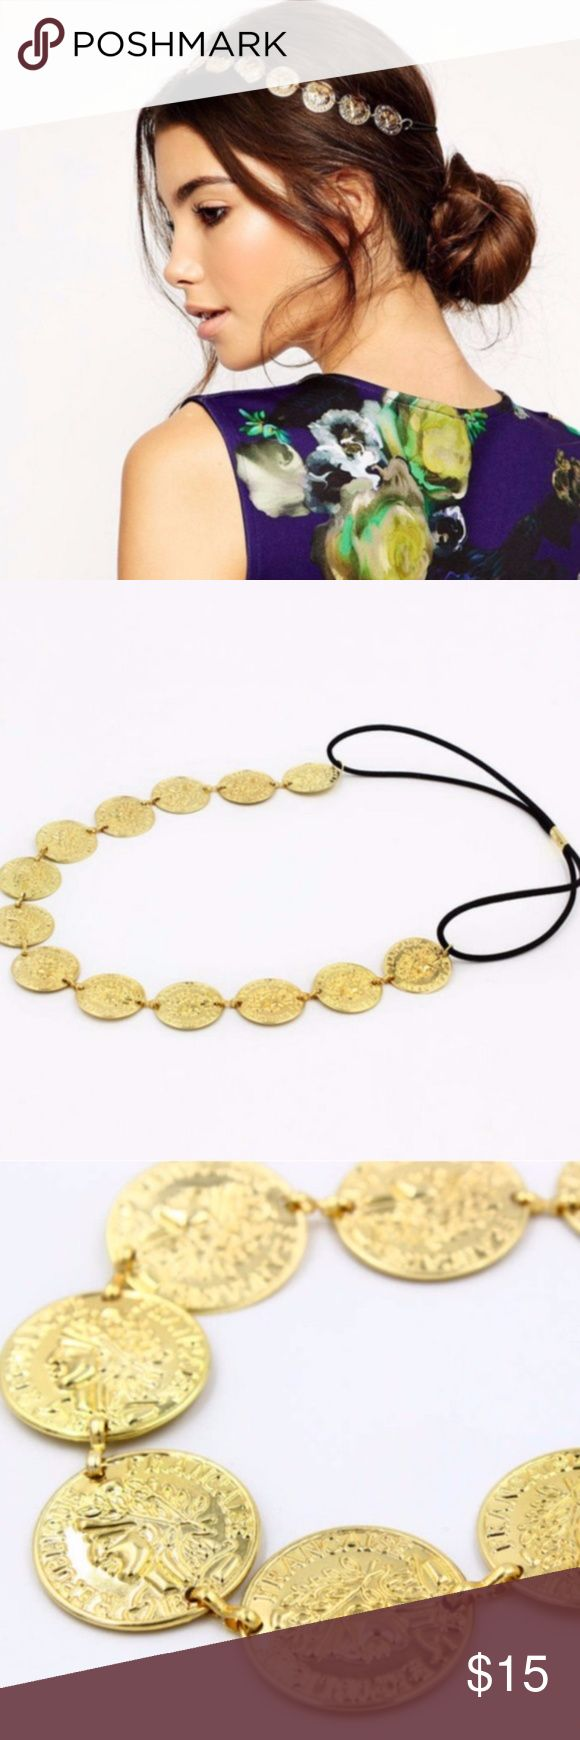 Gold Coin Black Elastic Headband Brand New Without Tags Alloy and Black Elastic Made in China Without stretching, gold coins and black elastic are ~20.5 Accessories Hair Accessories